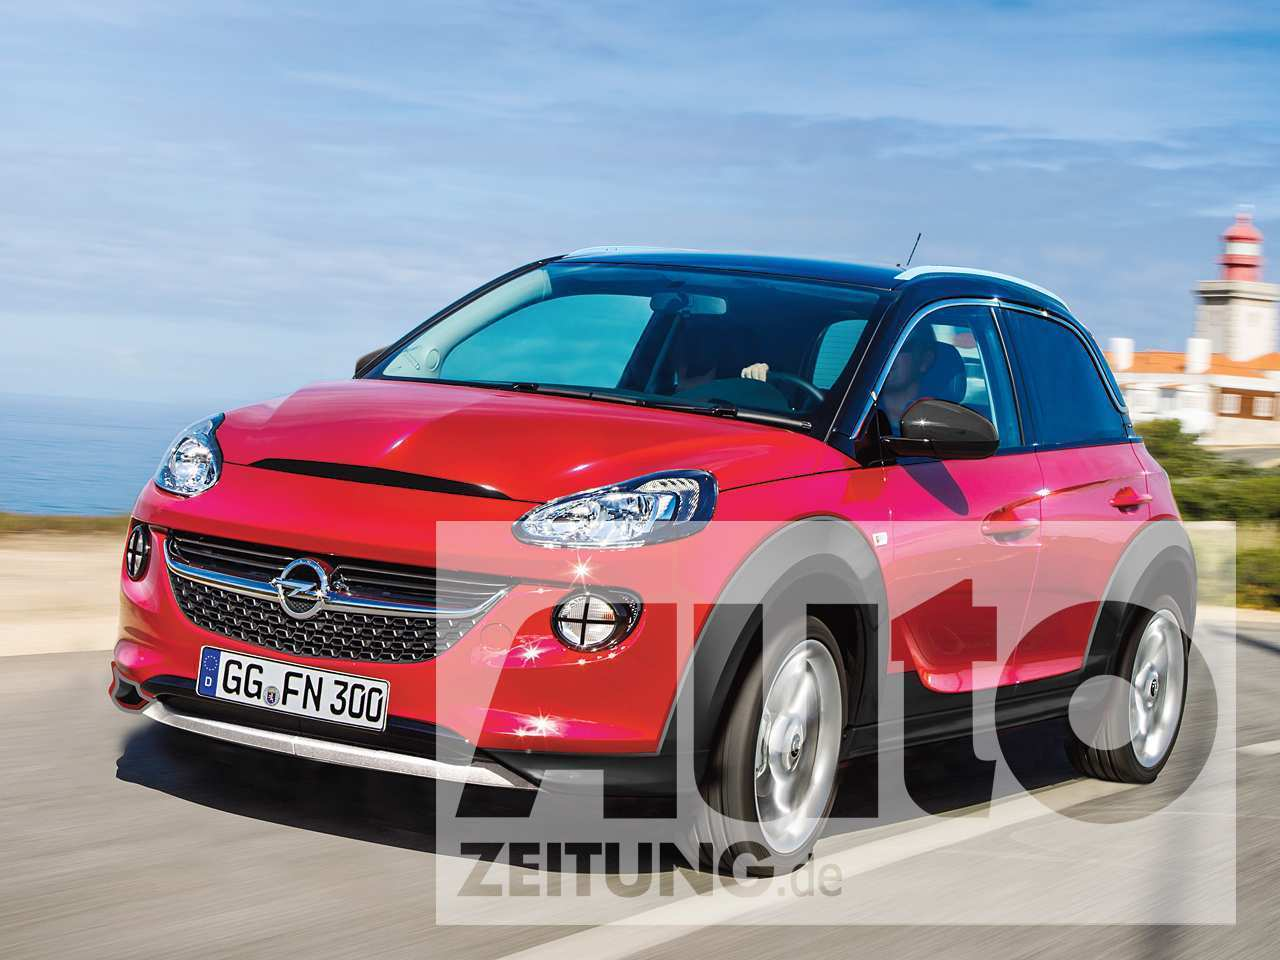 36 All New Opel Modelle Bis 2020 Spesification